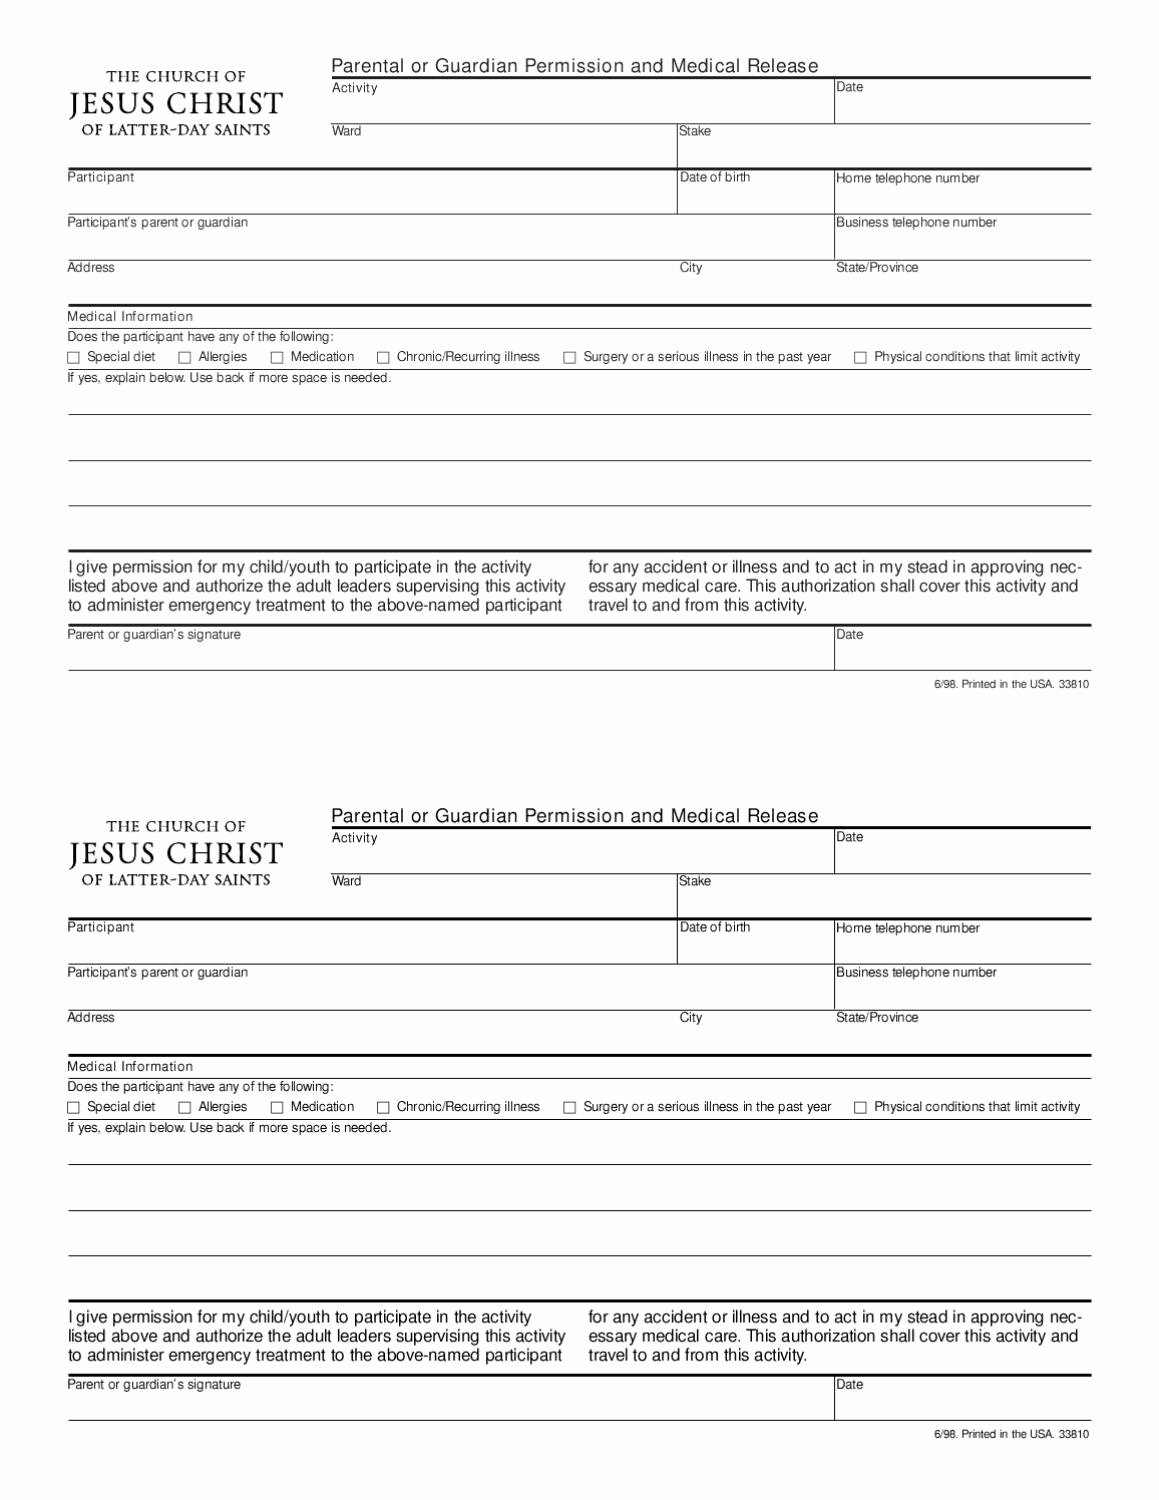 Youth Permission Slip Template Awesome Lds Youth Activity Permission Slip by Cynthia Woodruff issuu